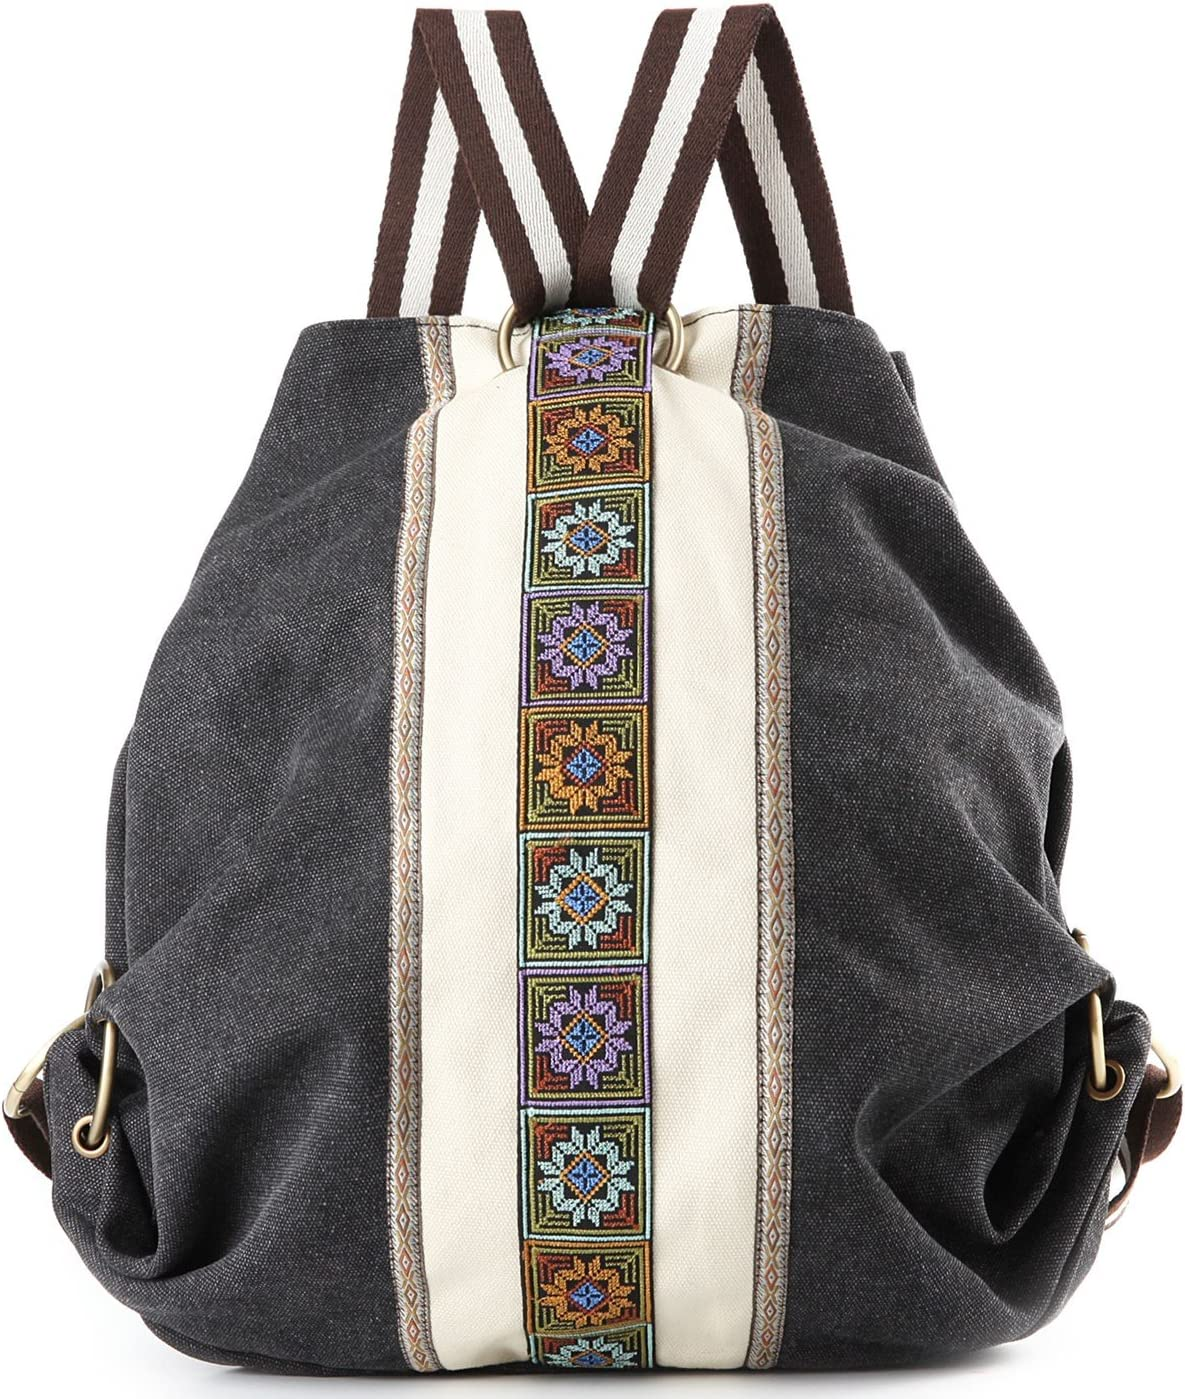 Women Canvas Backpacks Daypack Casual Shoulder Bag, School Bag Laptop Backpack (Grey Black)